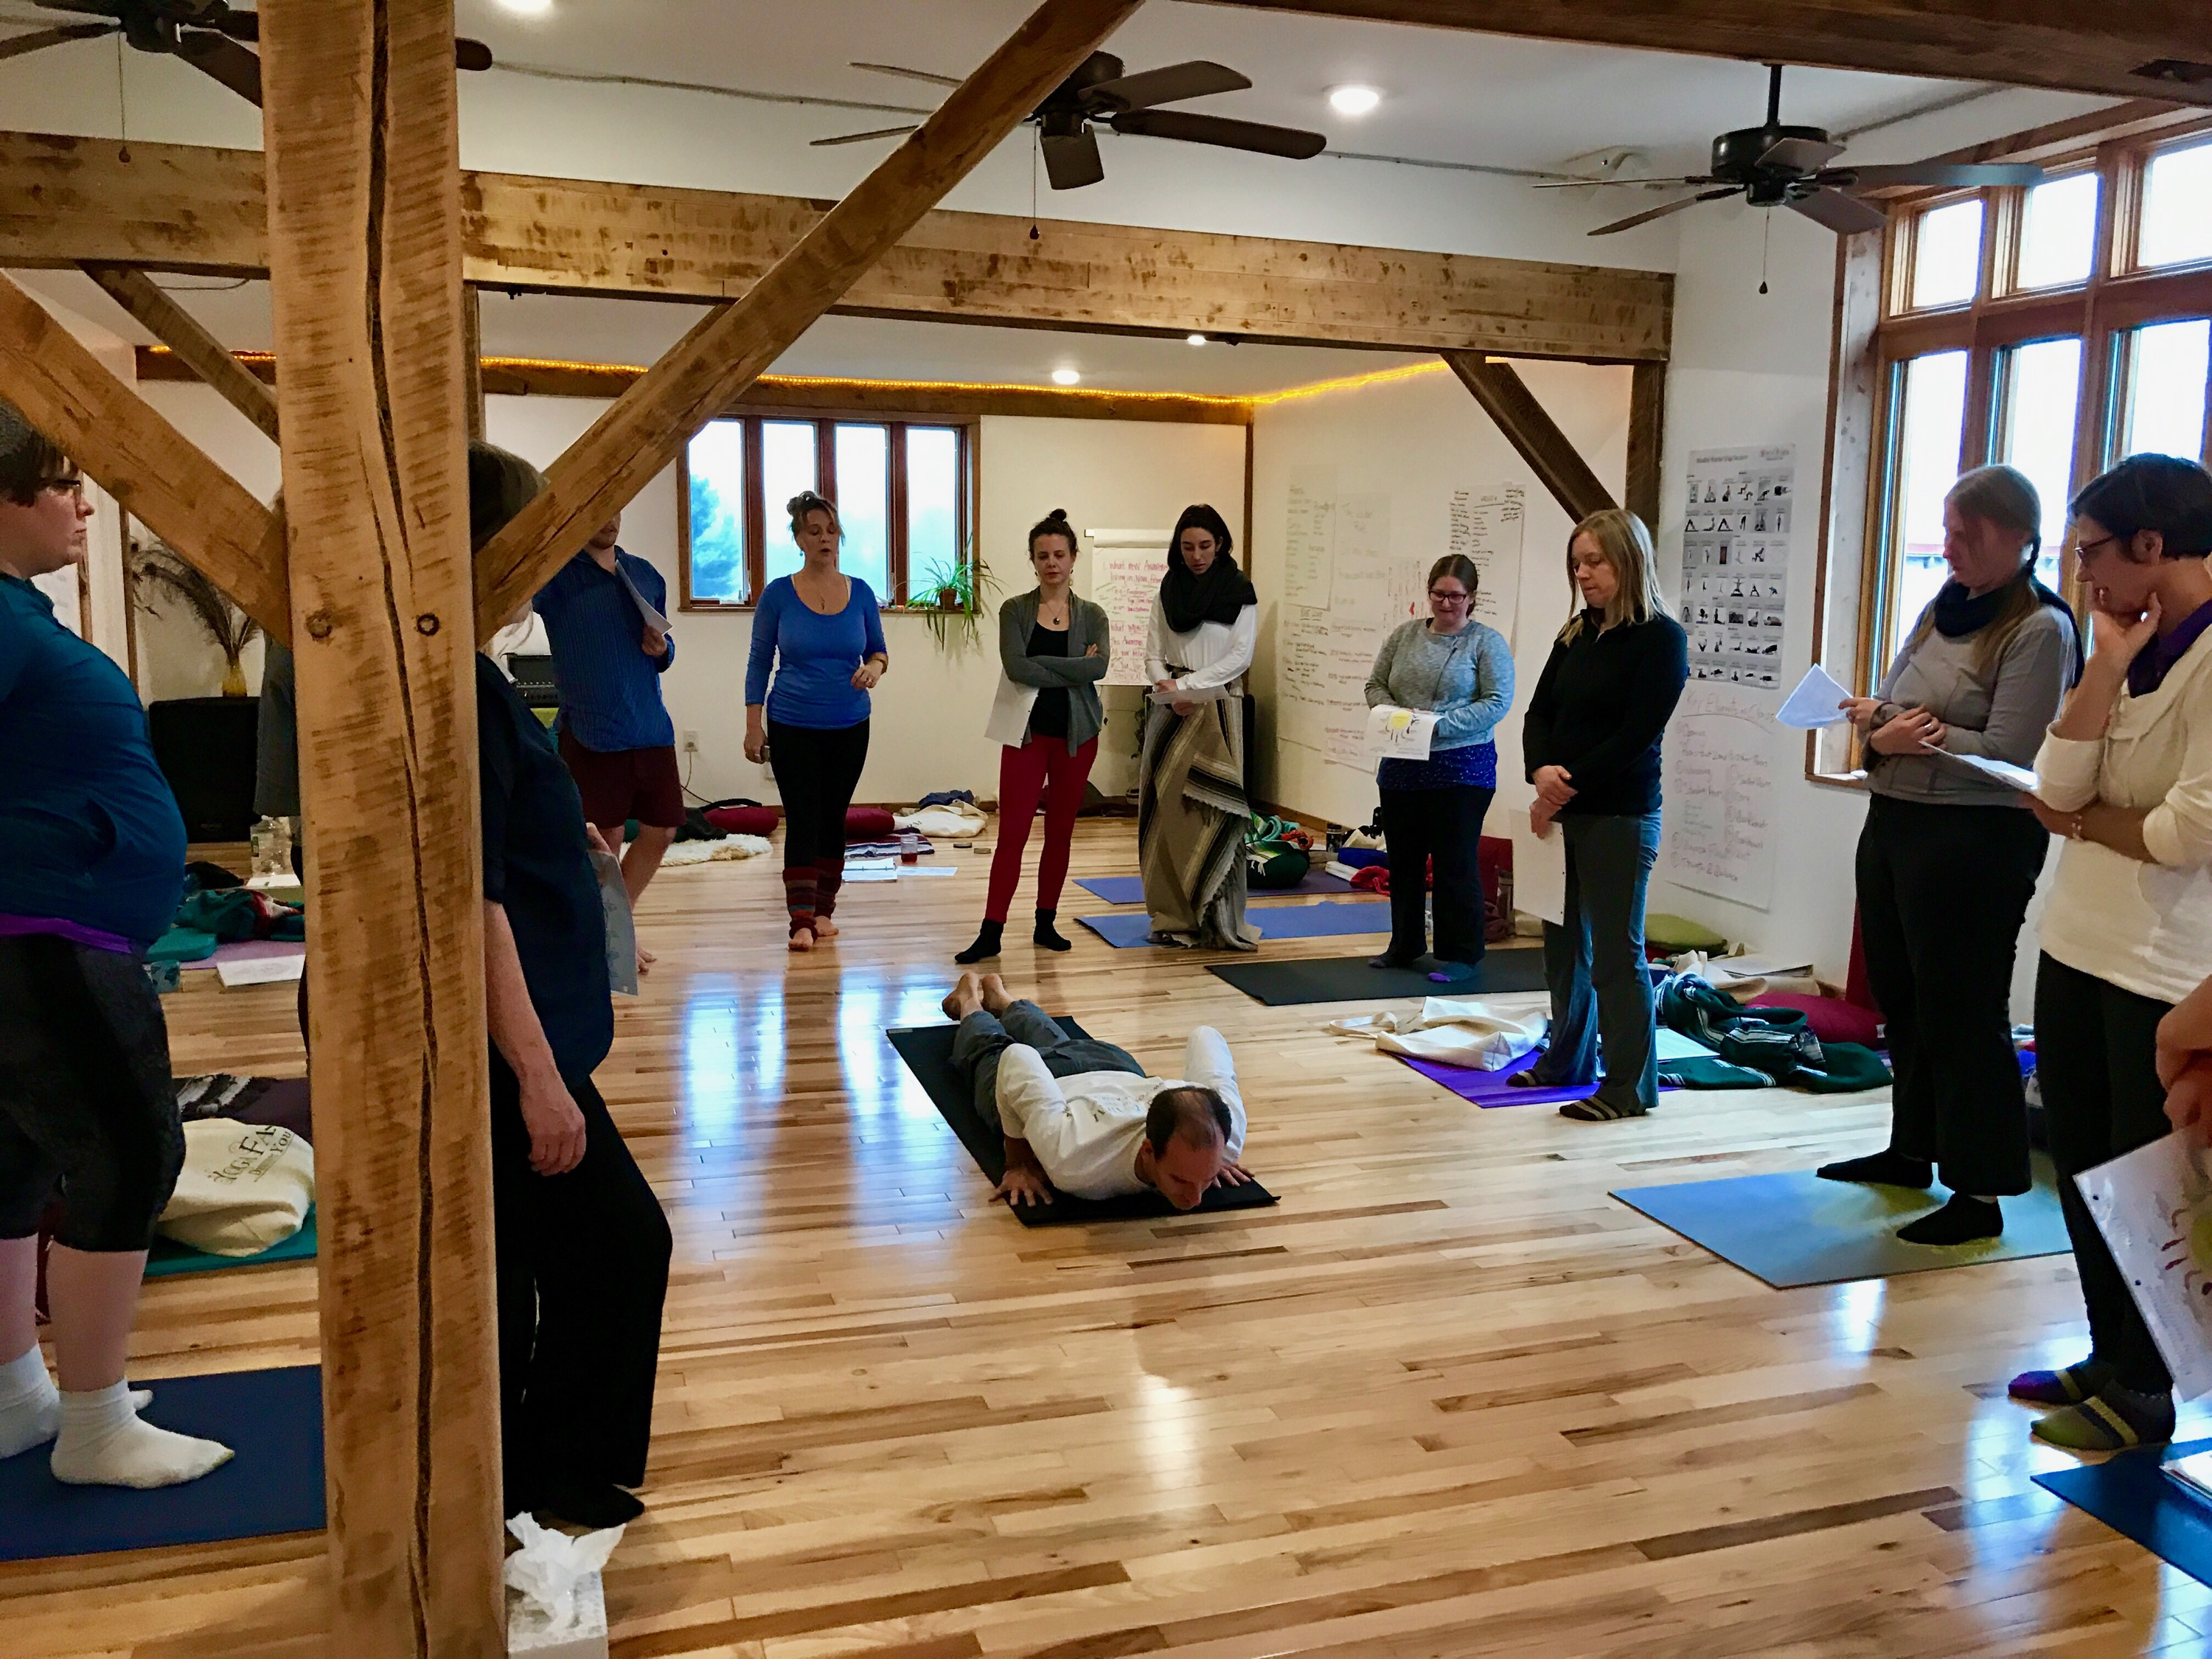 Learning how to lead sun salutations